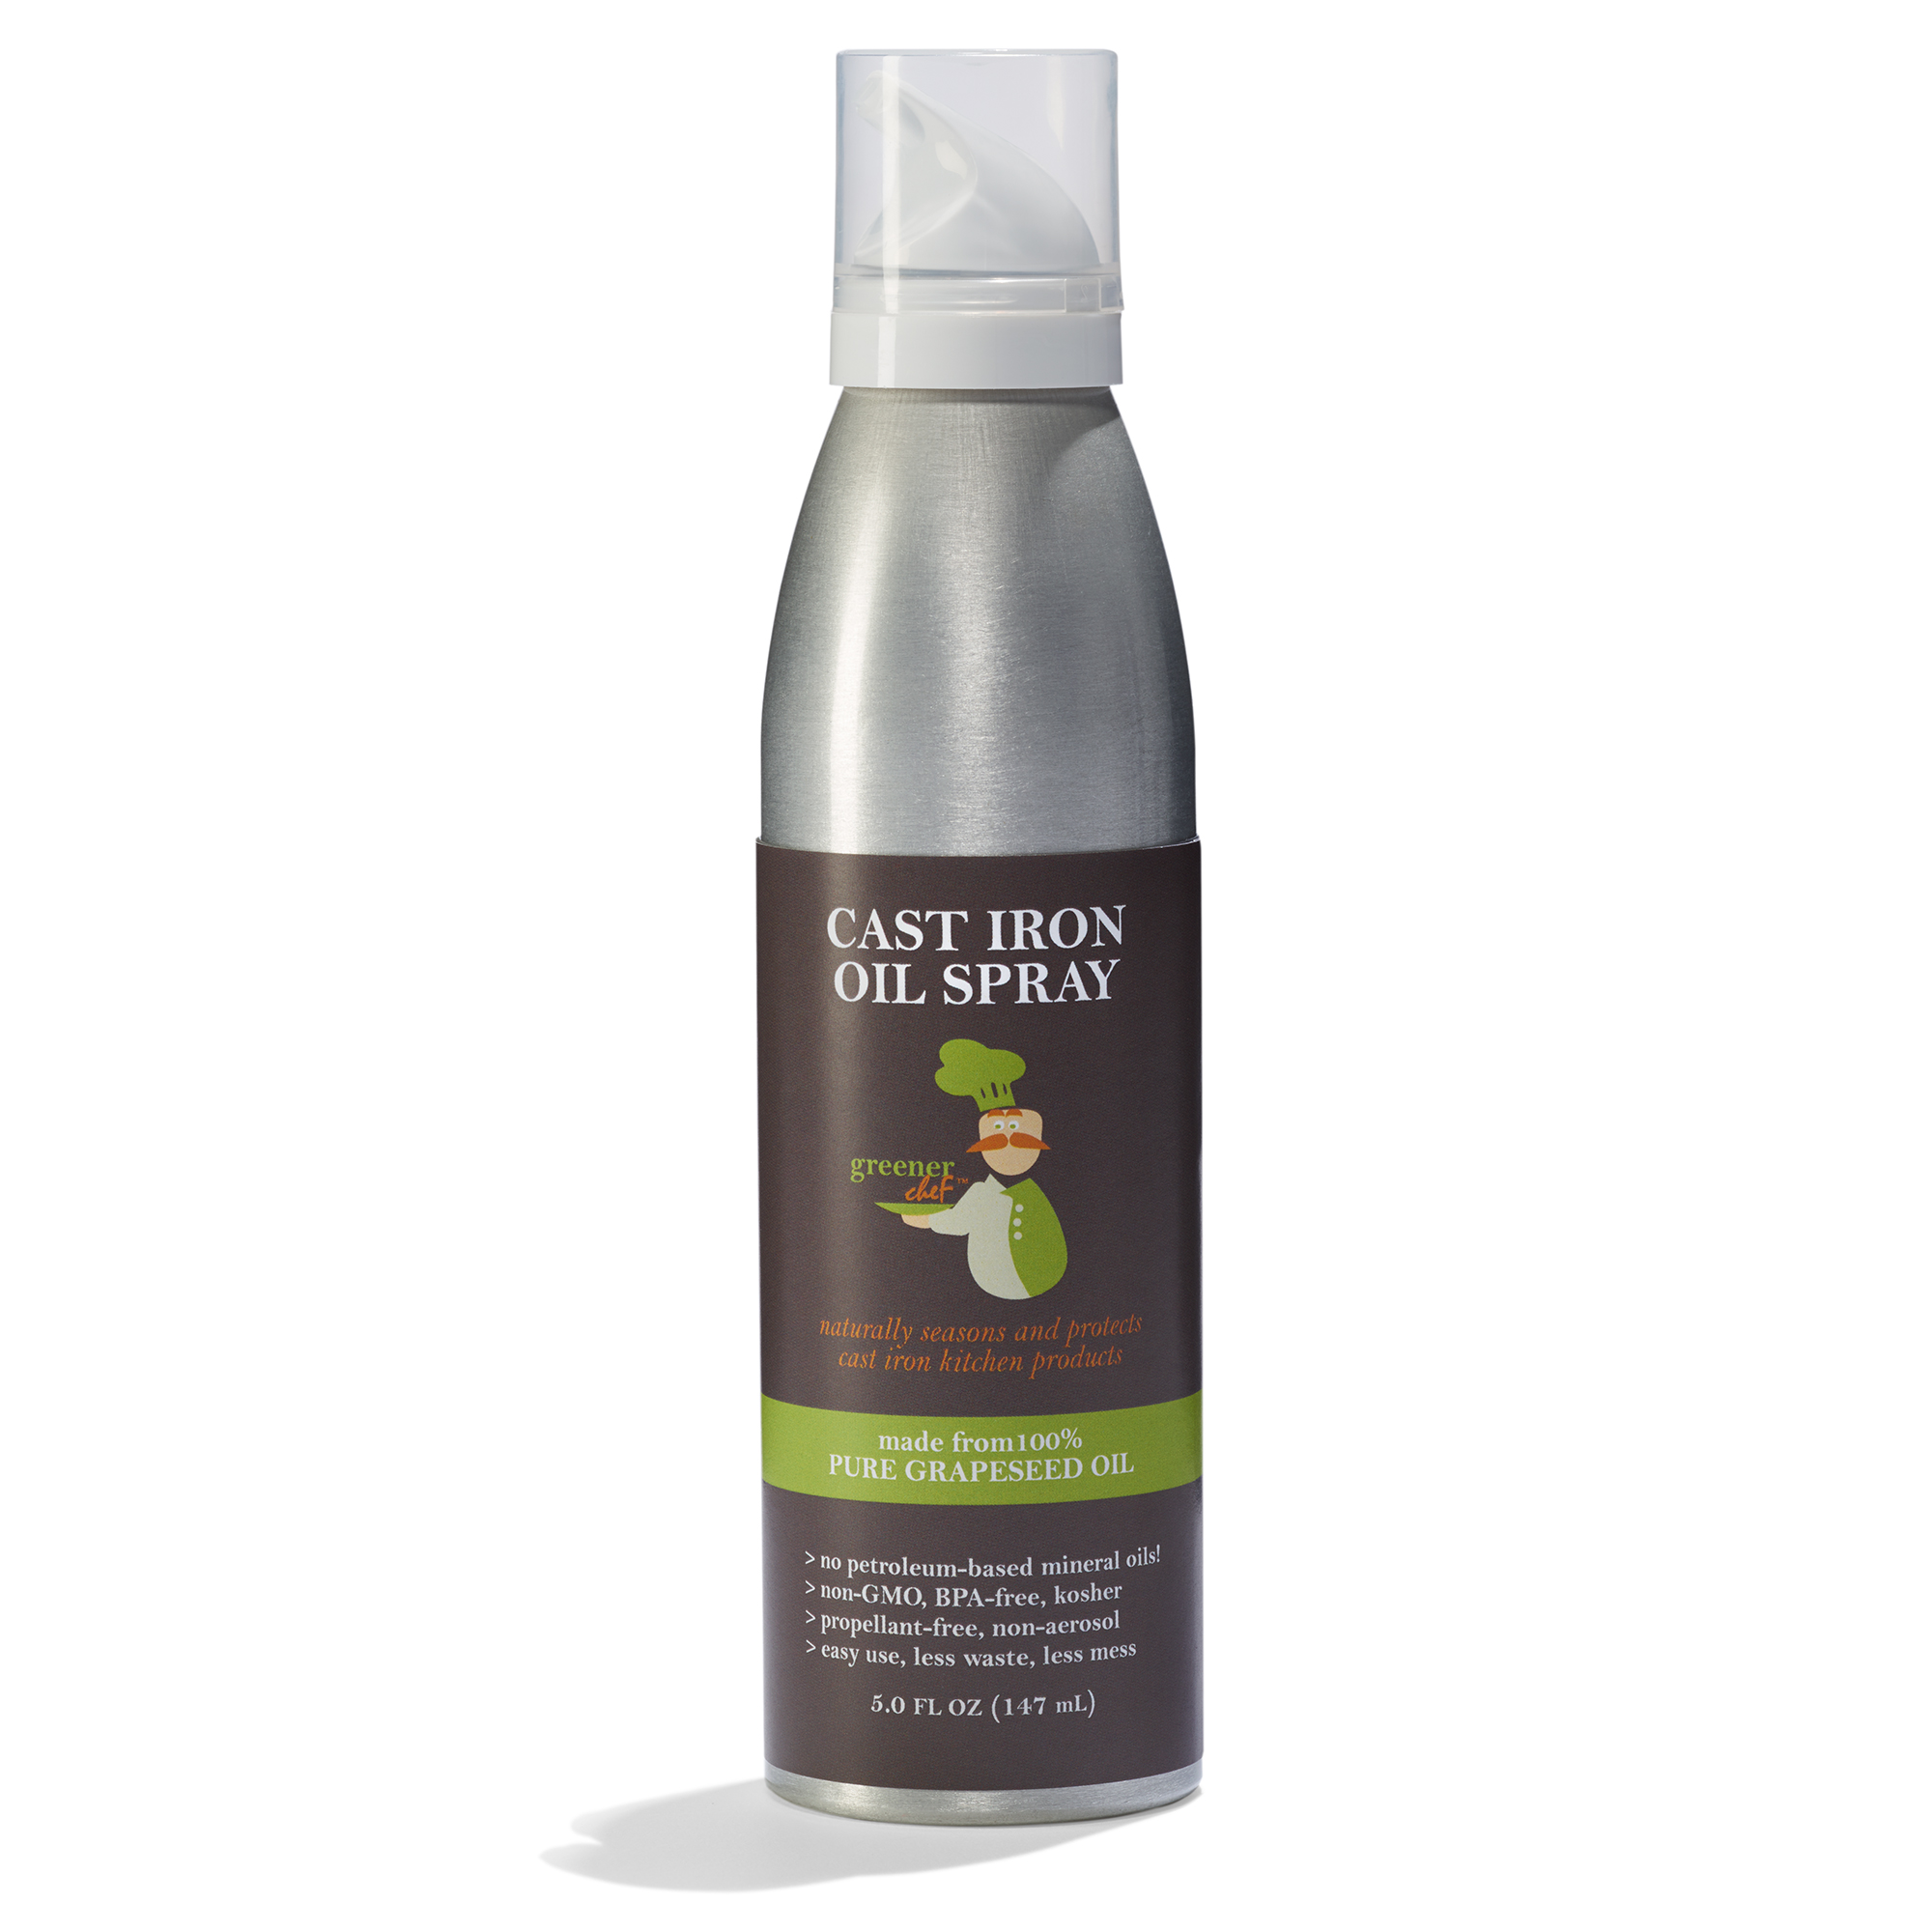 Cast Iron Oil Spray.jpg